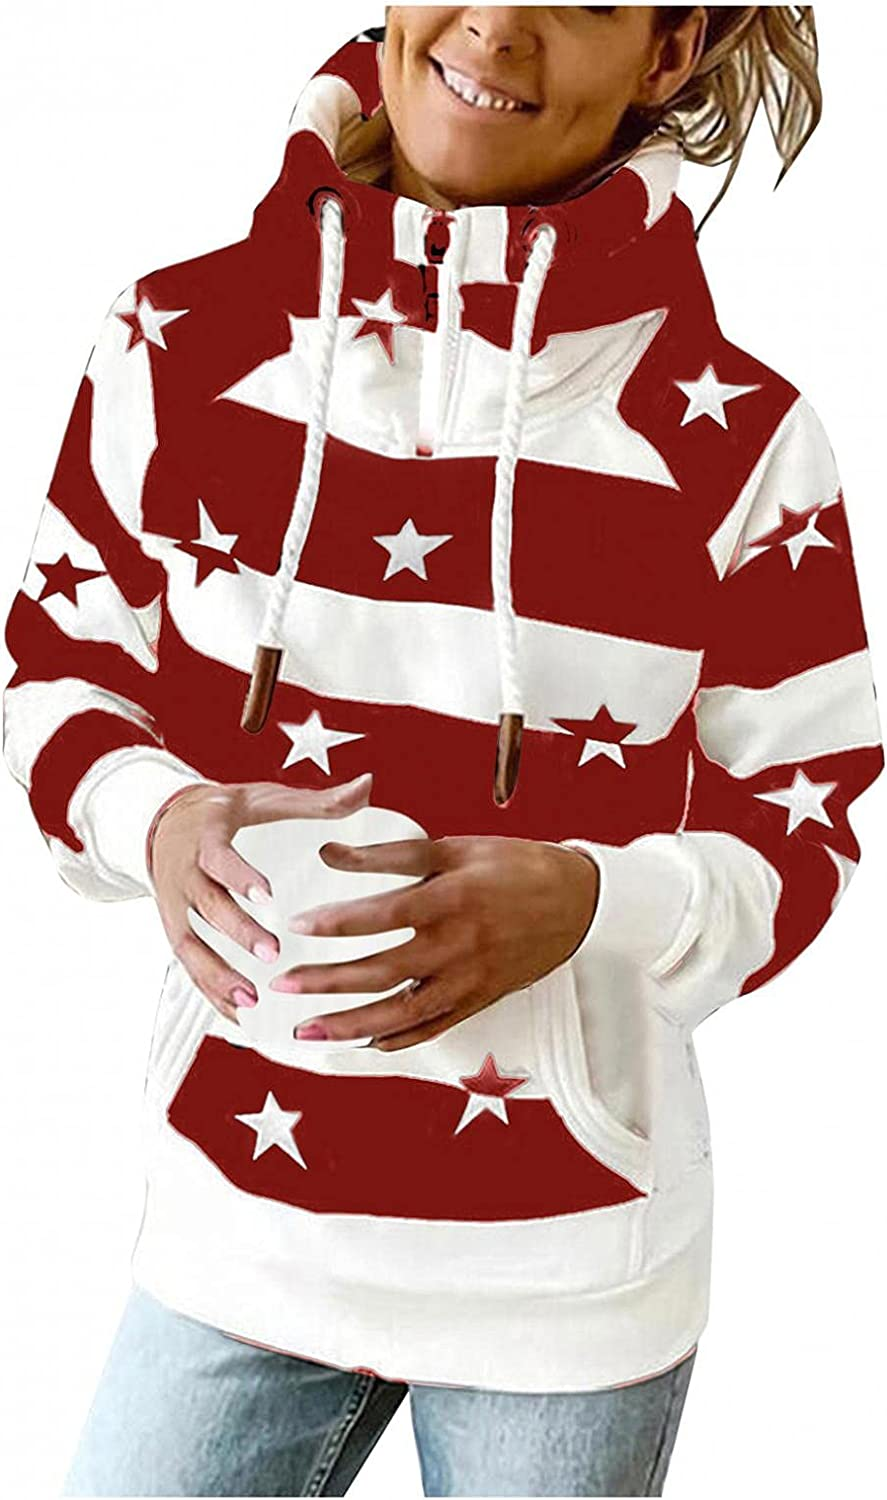 Gibobby Hooded Sweatshirts for Women 1/4 Zipper Pullover Turtle Neck Long Sleeve Stripe Drawstring Hoodies with Pockets